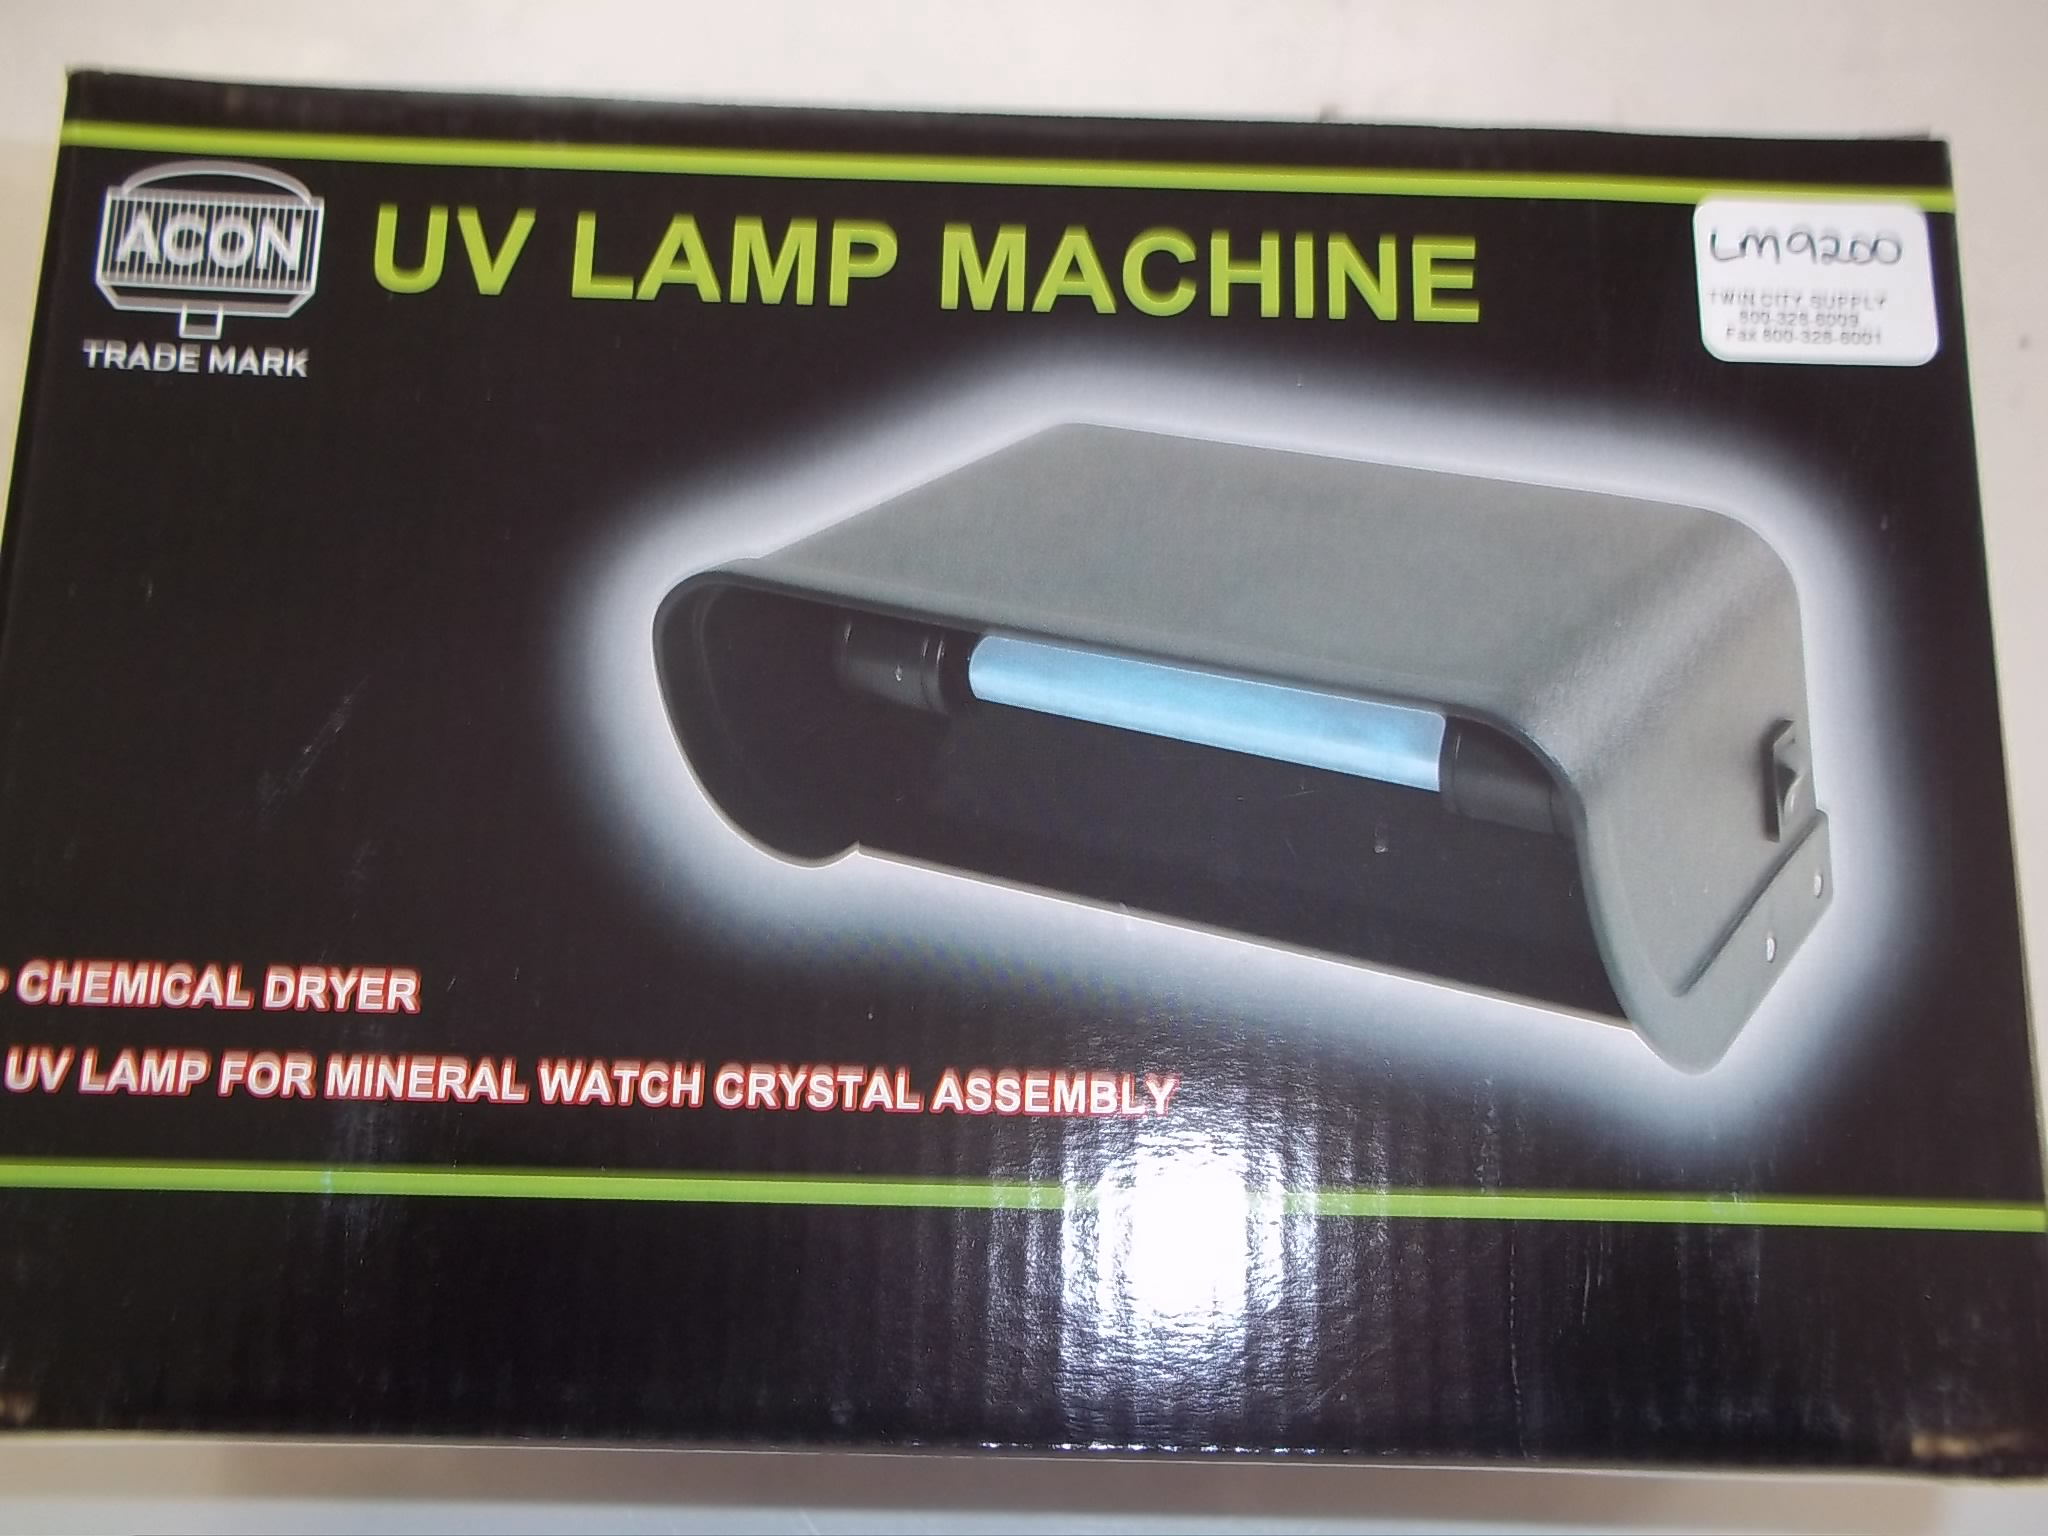 LM9200 UV Lamp for Curing Watch Crystals